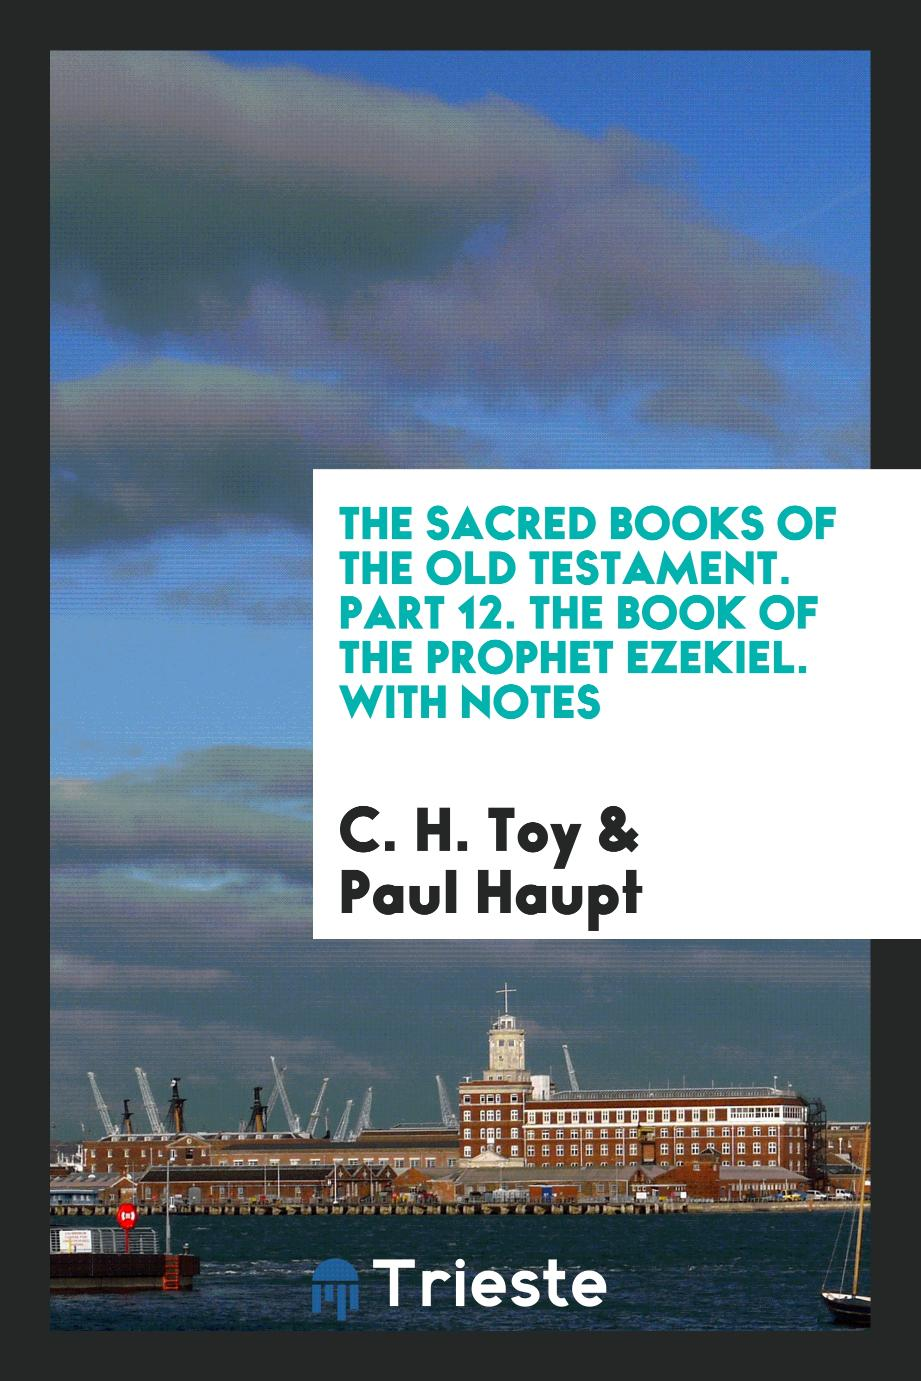 The Sacred Books of the Old Testament. Part 12. The Book of the Prophet Ezekiel. With Notes